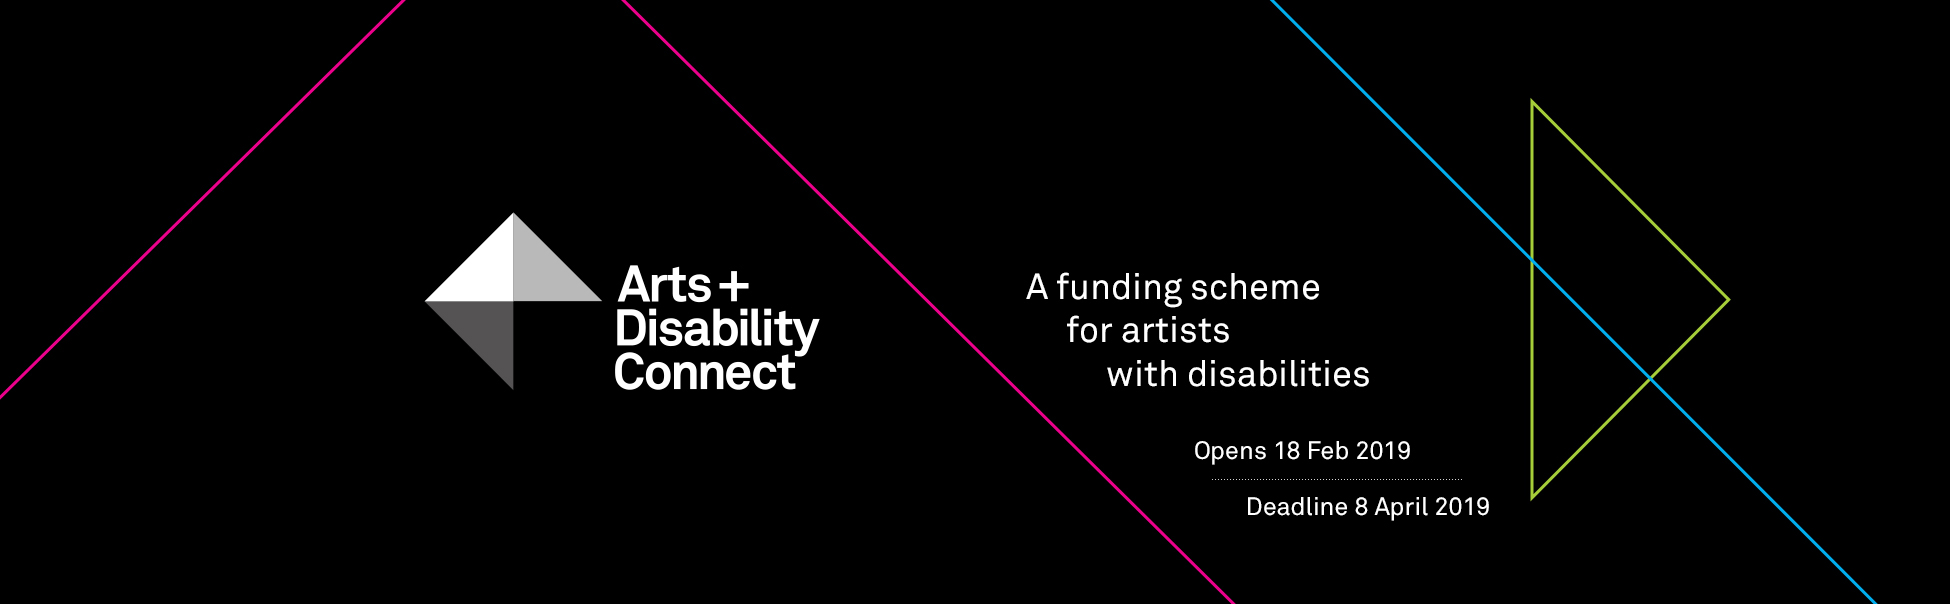 Arts and Disability Connect A Funding Scheme for artists with disabilities. Opens 18 Feb 2019. Deadline 8 April 2019. Logo and graphic for Arts and Disability Connect 2018. Coloured lines and white logo on a black background